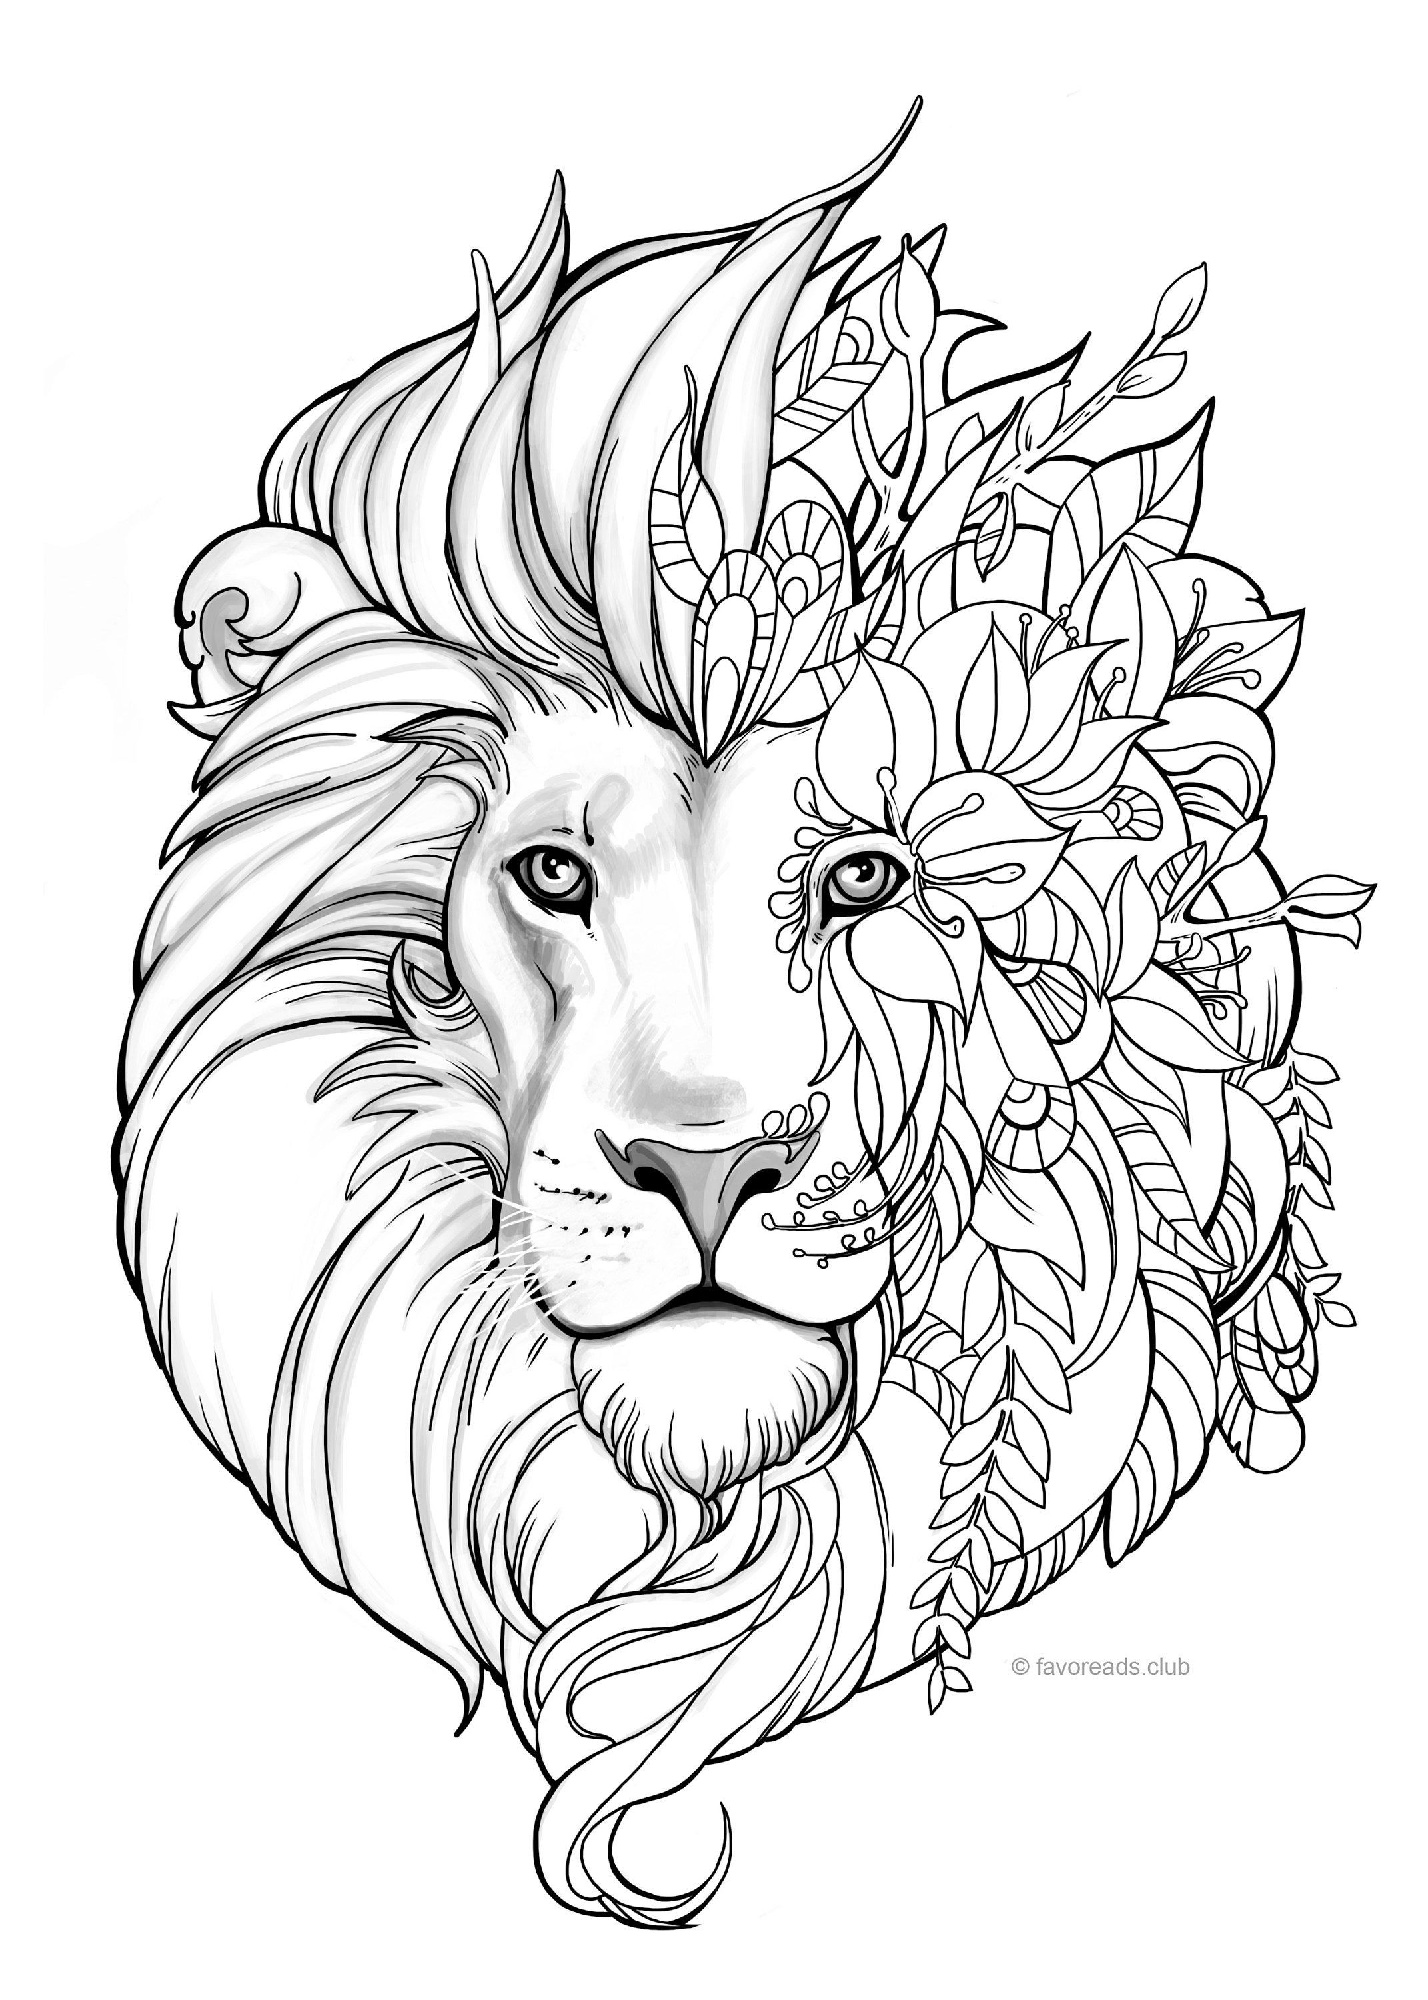 Hard Coloring Pages For Adults | 2000x1428